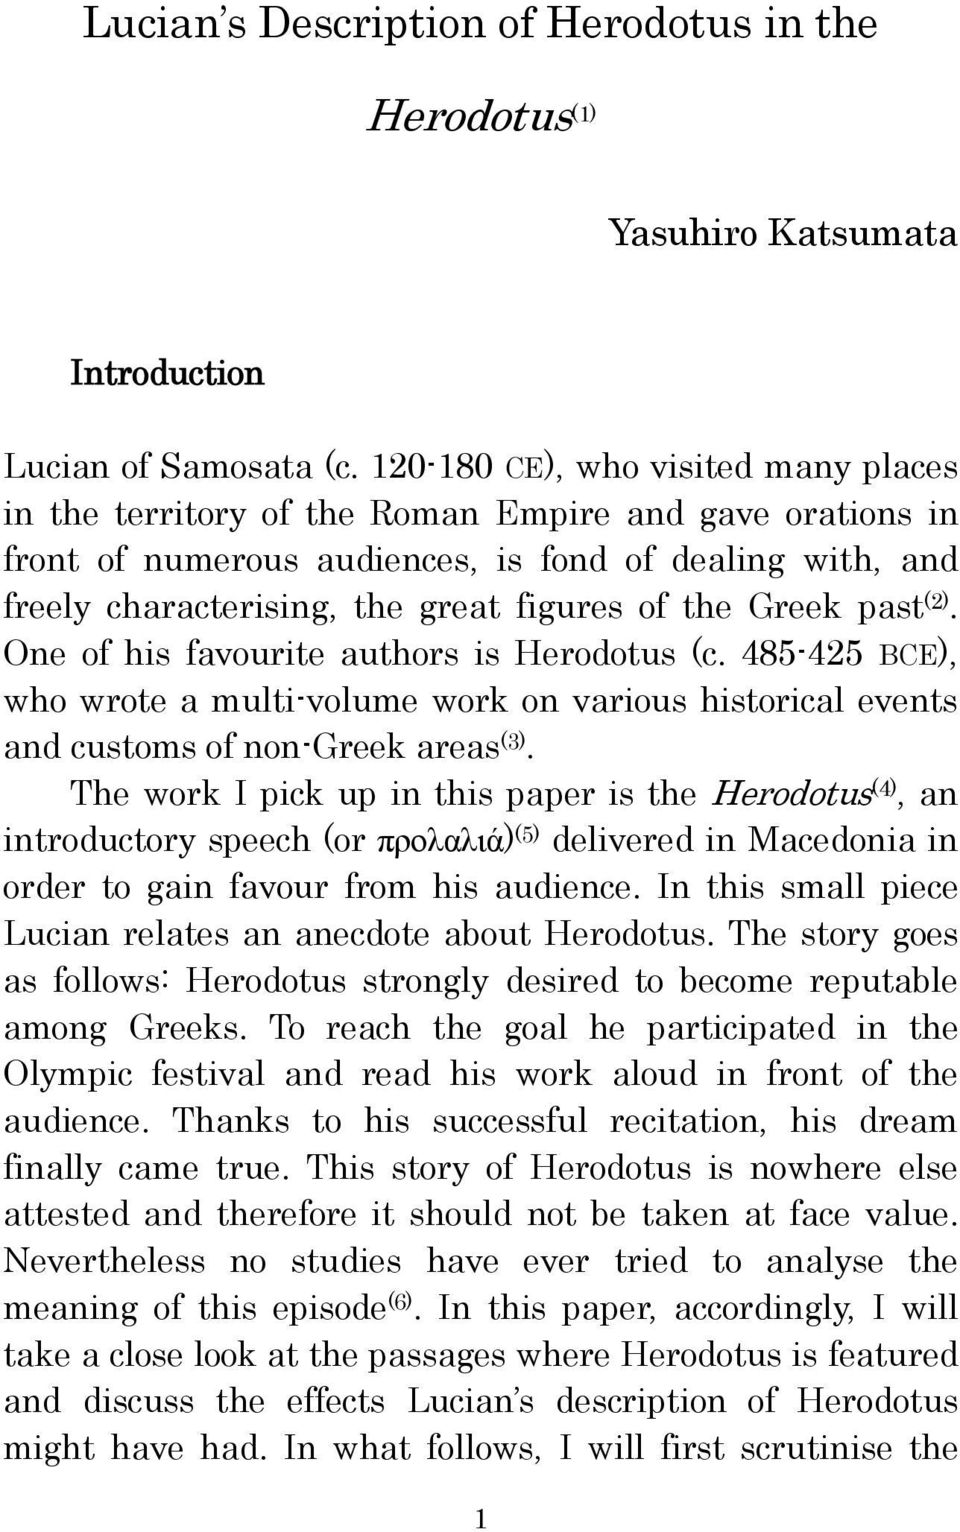 the Greek past (2). One of his favourite authors is Herodotus (c. 485-425 BCE), who wrote a multi-volume work on various historical events and customs of non-greek areas (3).